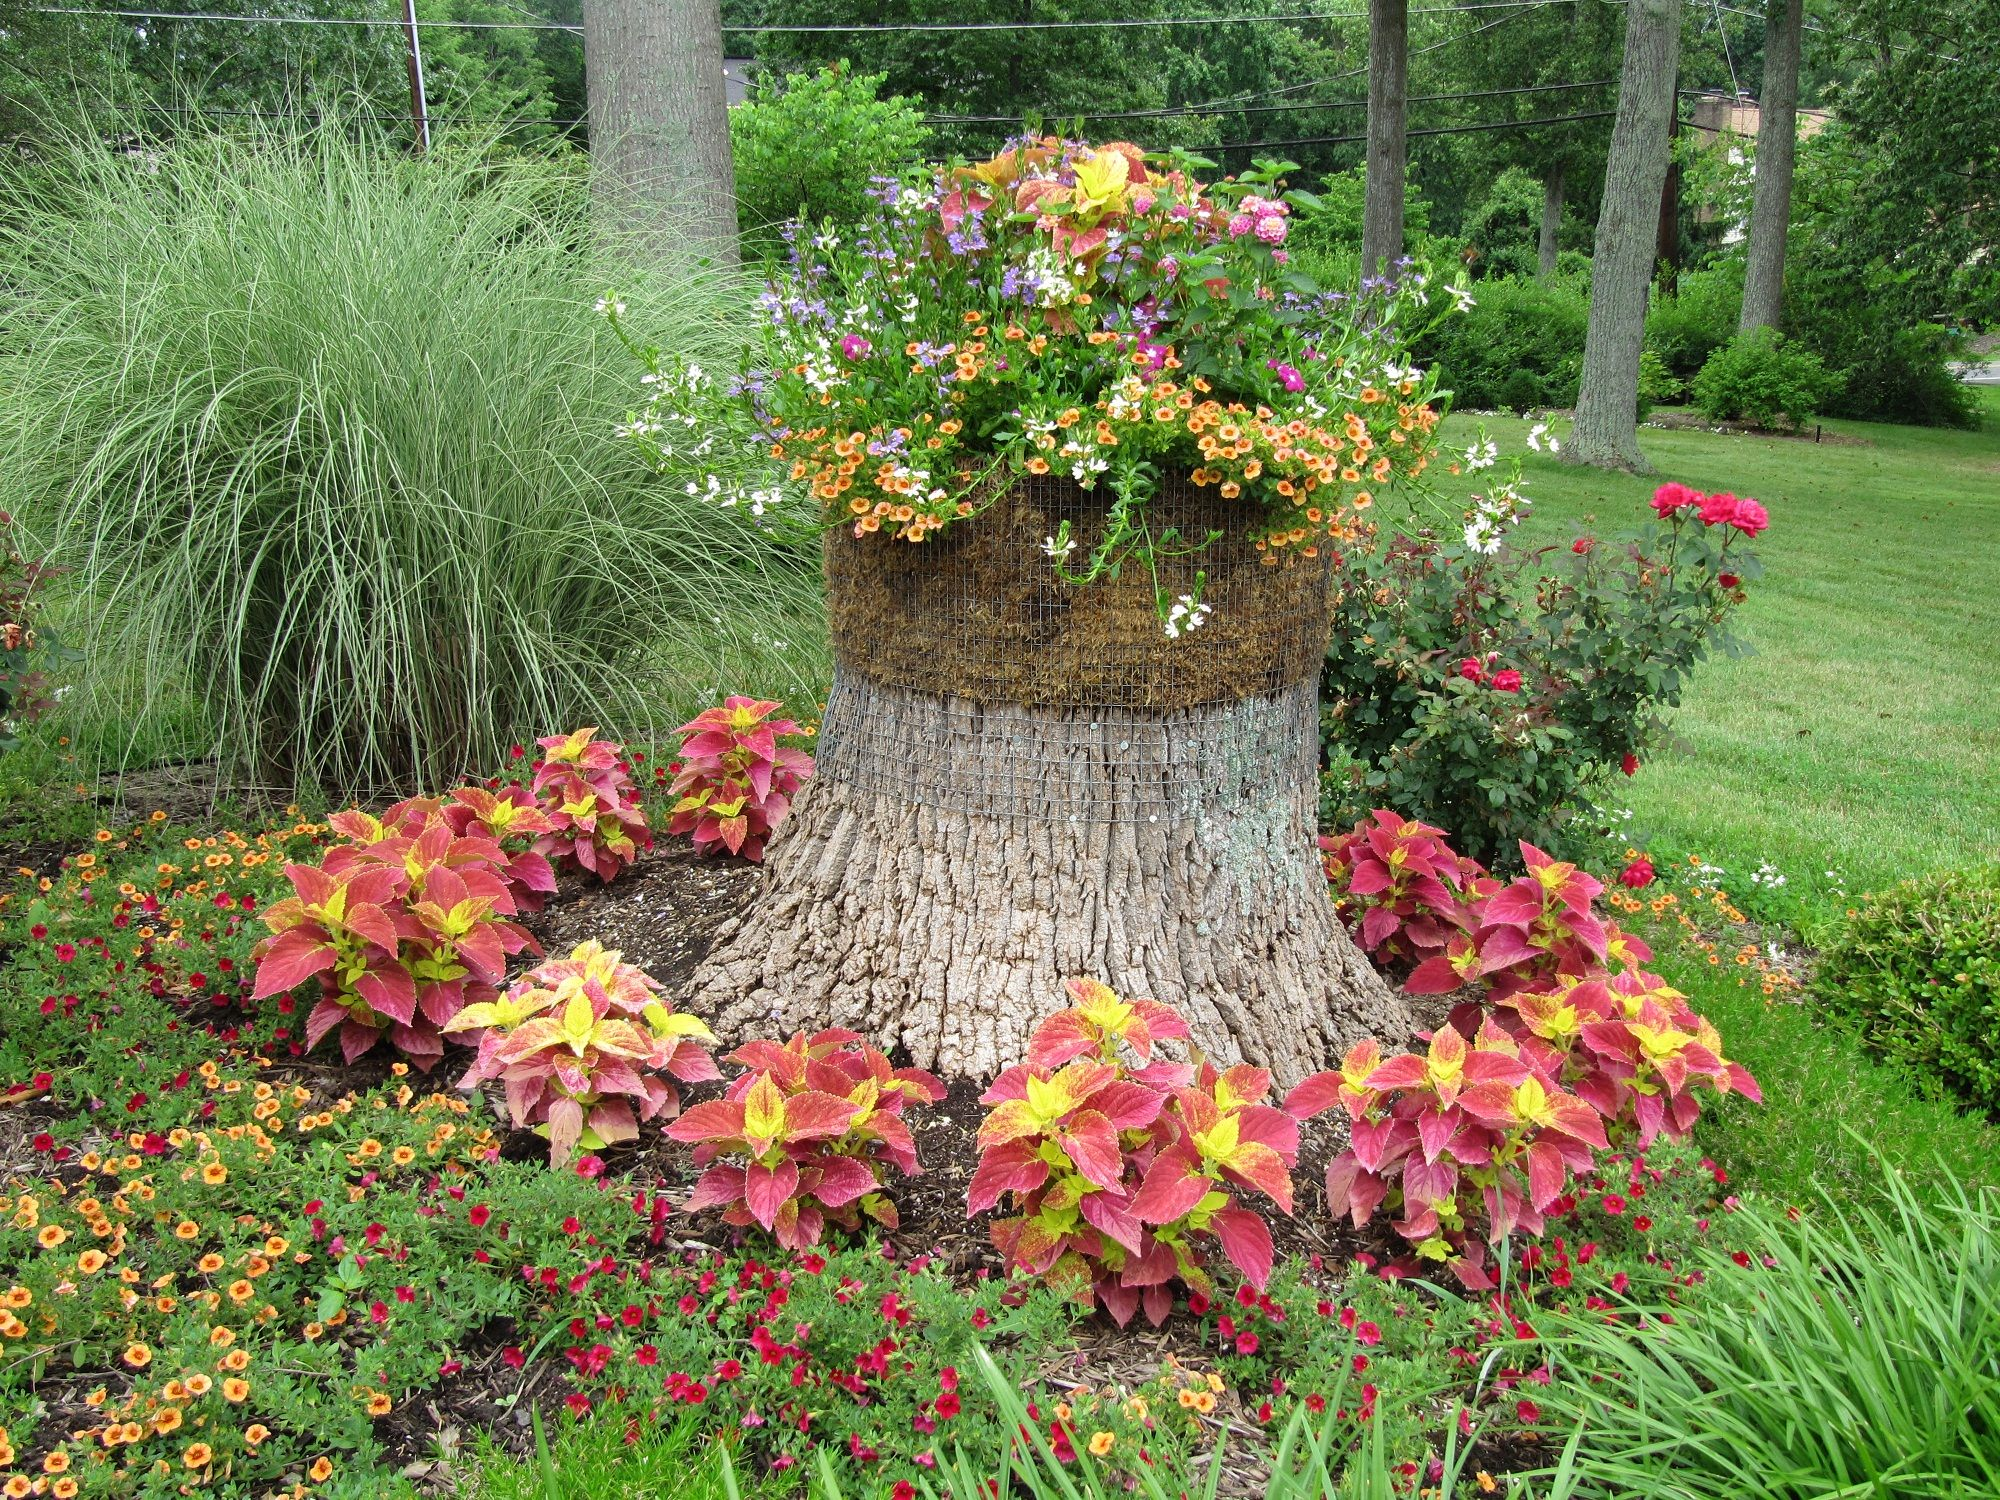 Annual flower bed design ideas award winning containers for Flowers for flower bed ideas